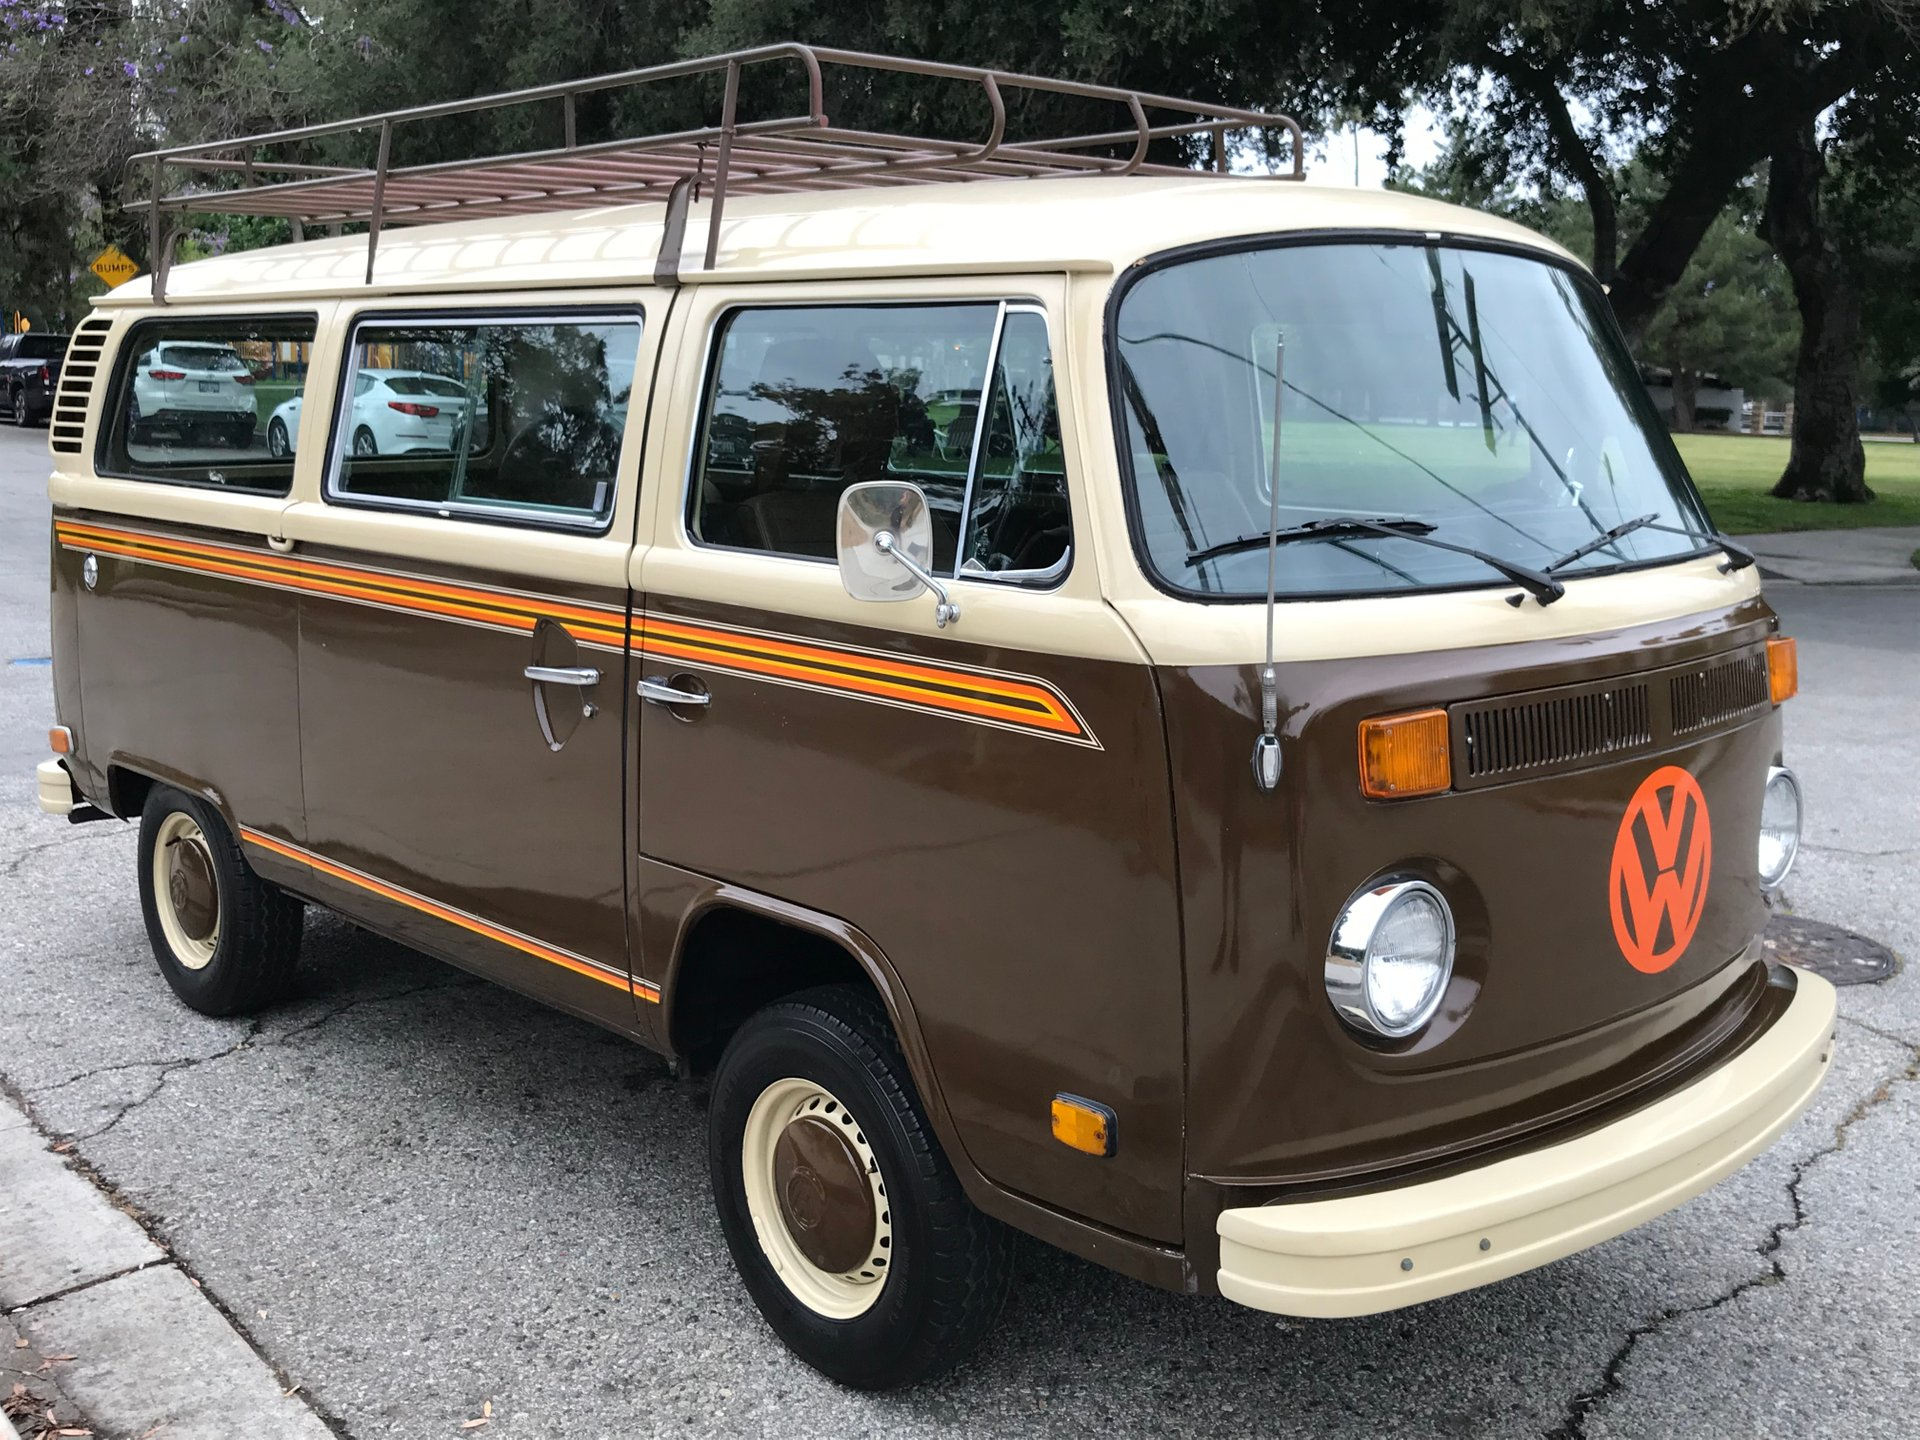 1978 Volkswagen Bus Vanagon Vintage Car Collector